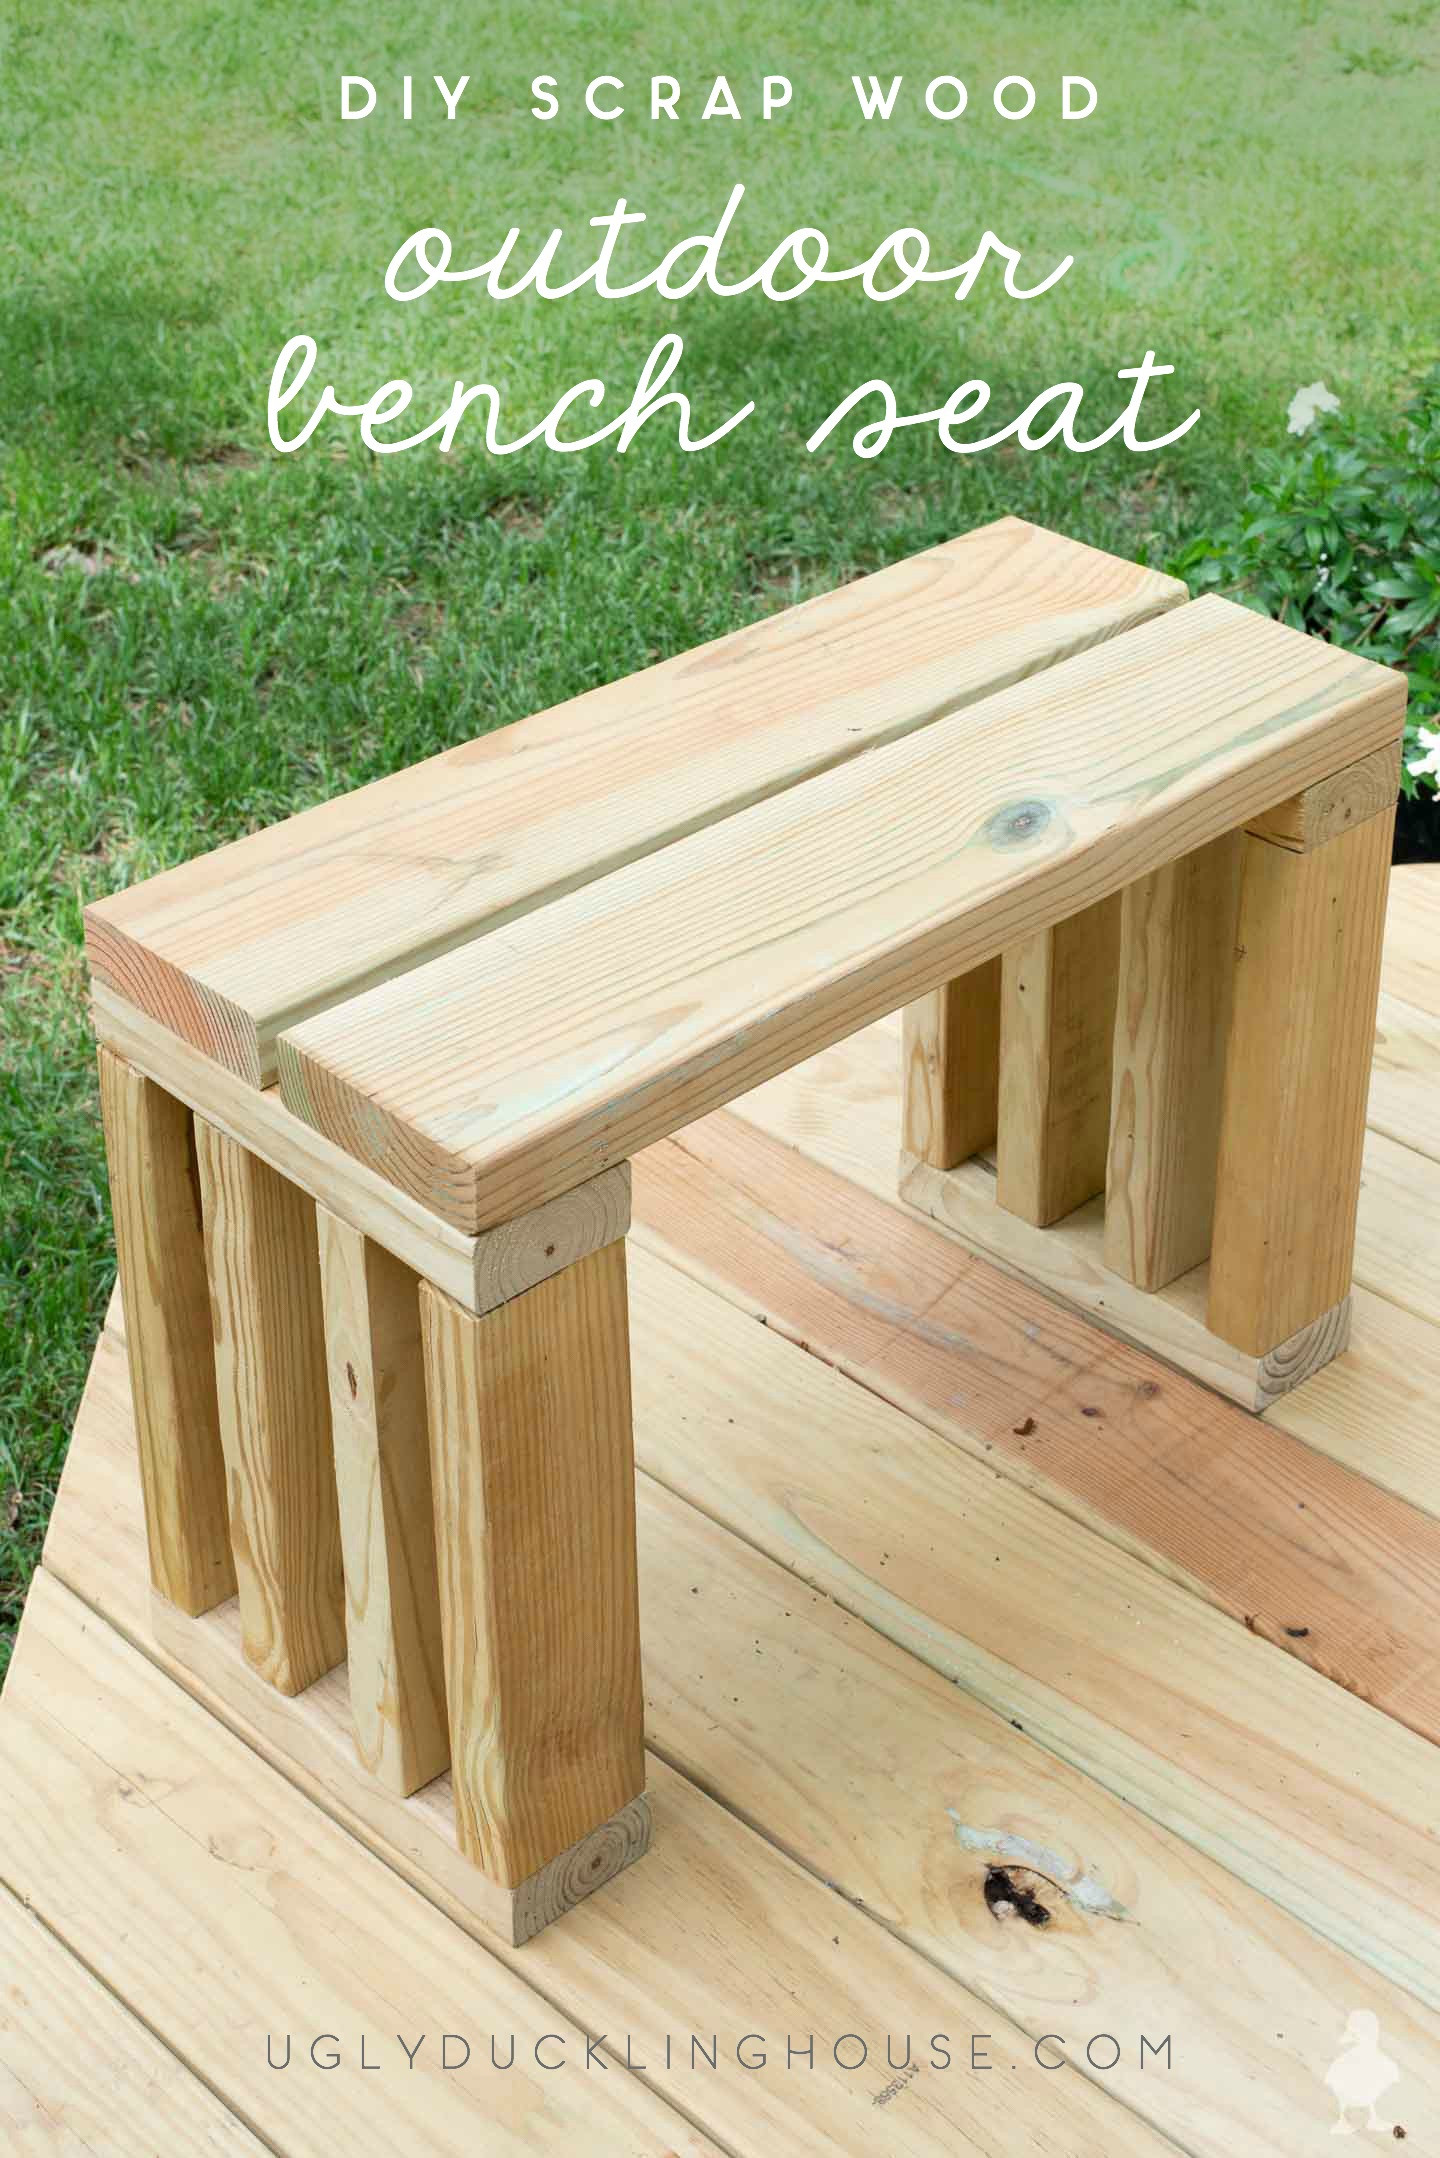 Best ideas about DIY Outdoor Benches . Save or Pin Scrap Wood Outdoor Bench Seat Now.